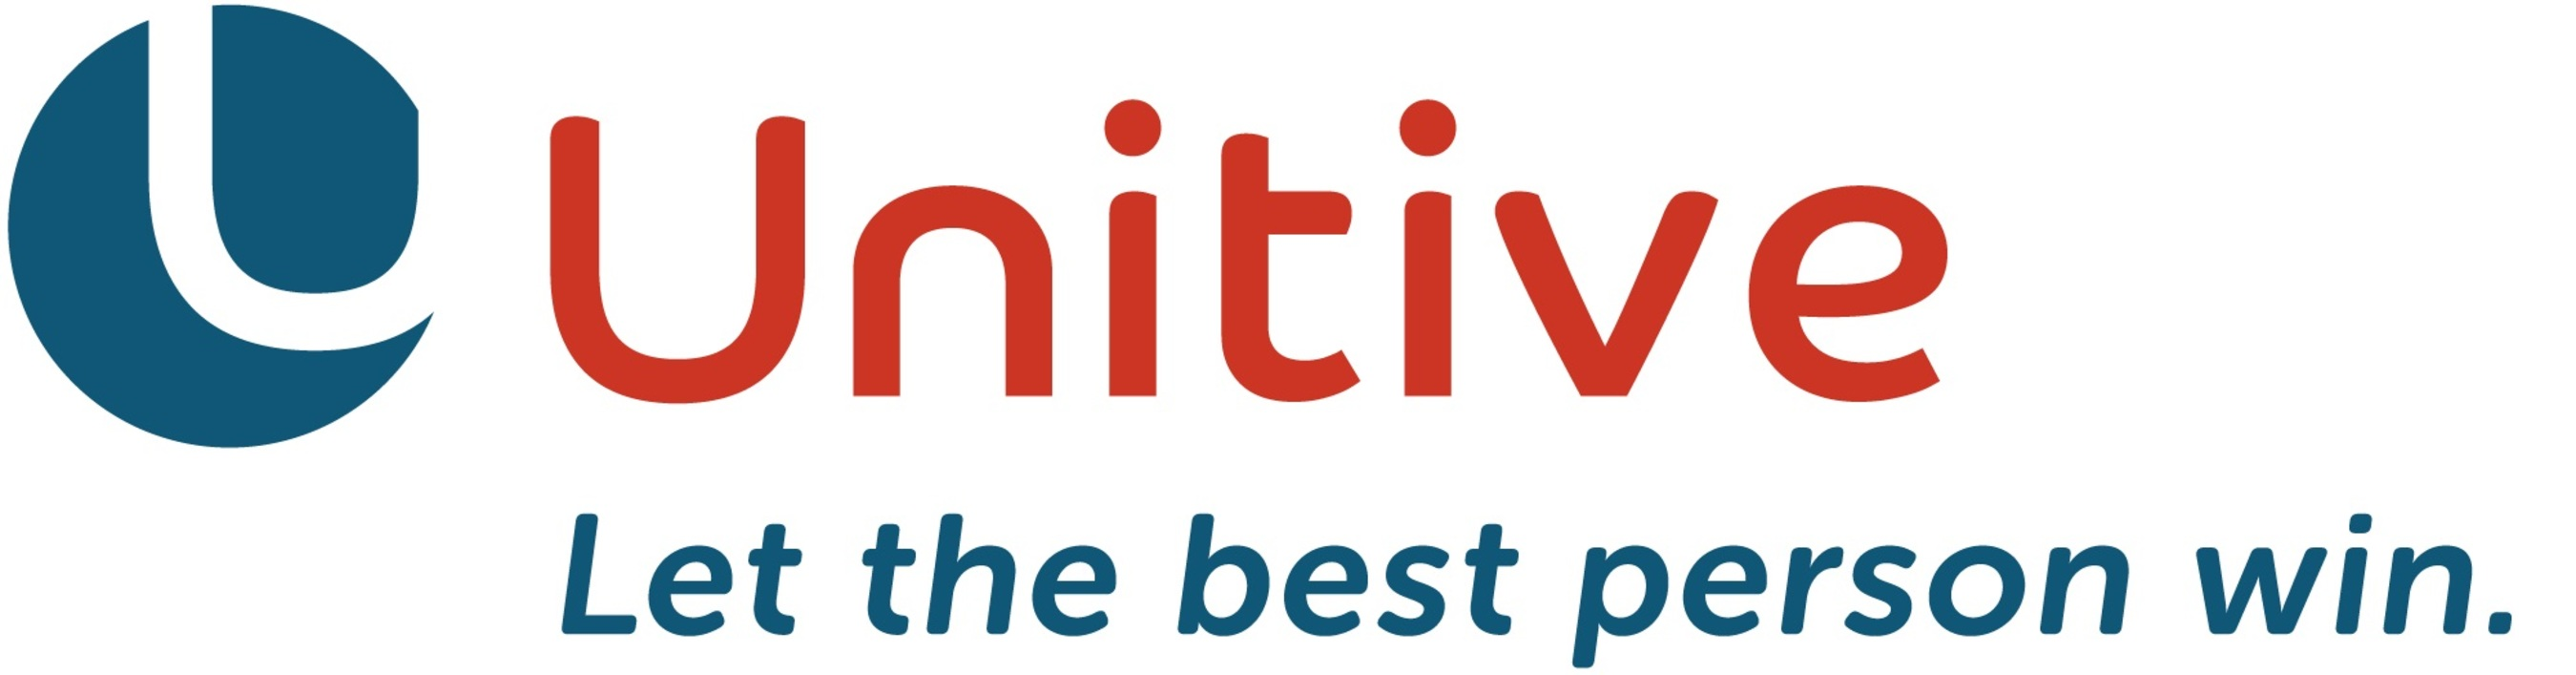 Unitive is a technology solution for full talent activation, helping corporations build diverse, innovative, productive teams. Unitive goes beyond training and reinforces behavioral change in real-time. Unitive transforms theoretical ideas about unconscious bias into pragmatic solutions that build stronger teams.